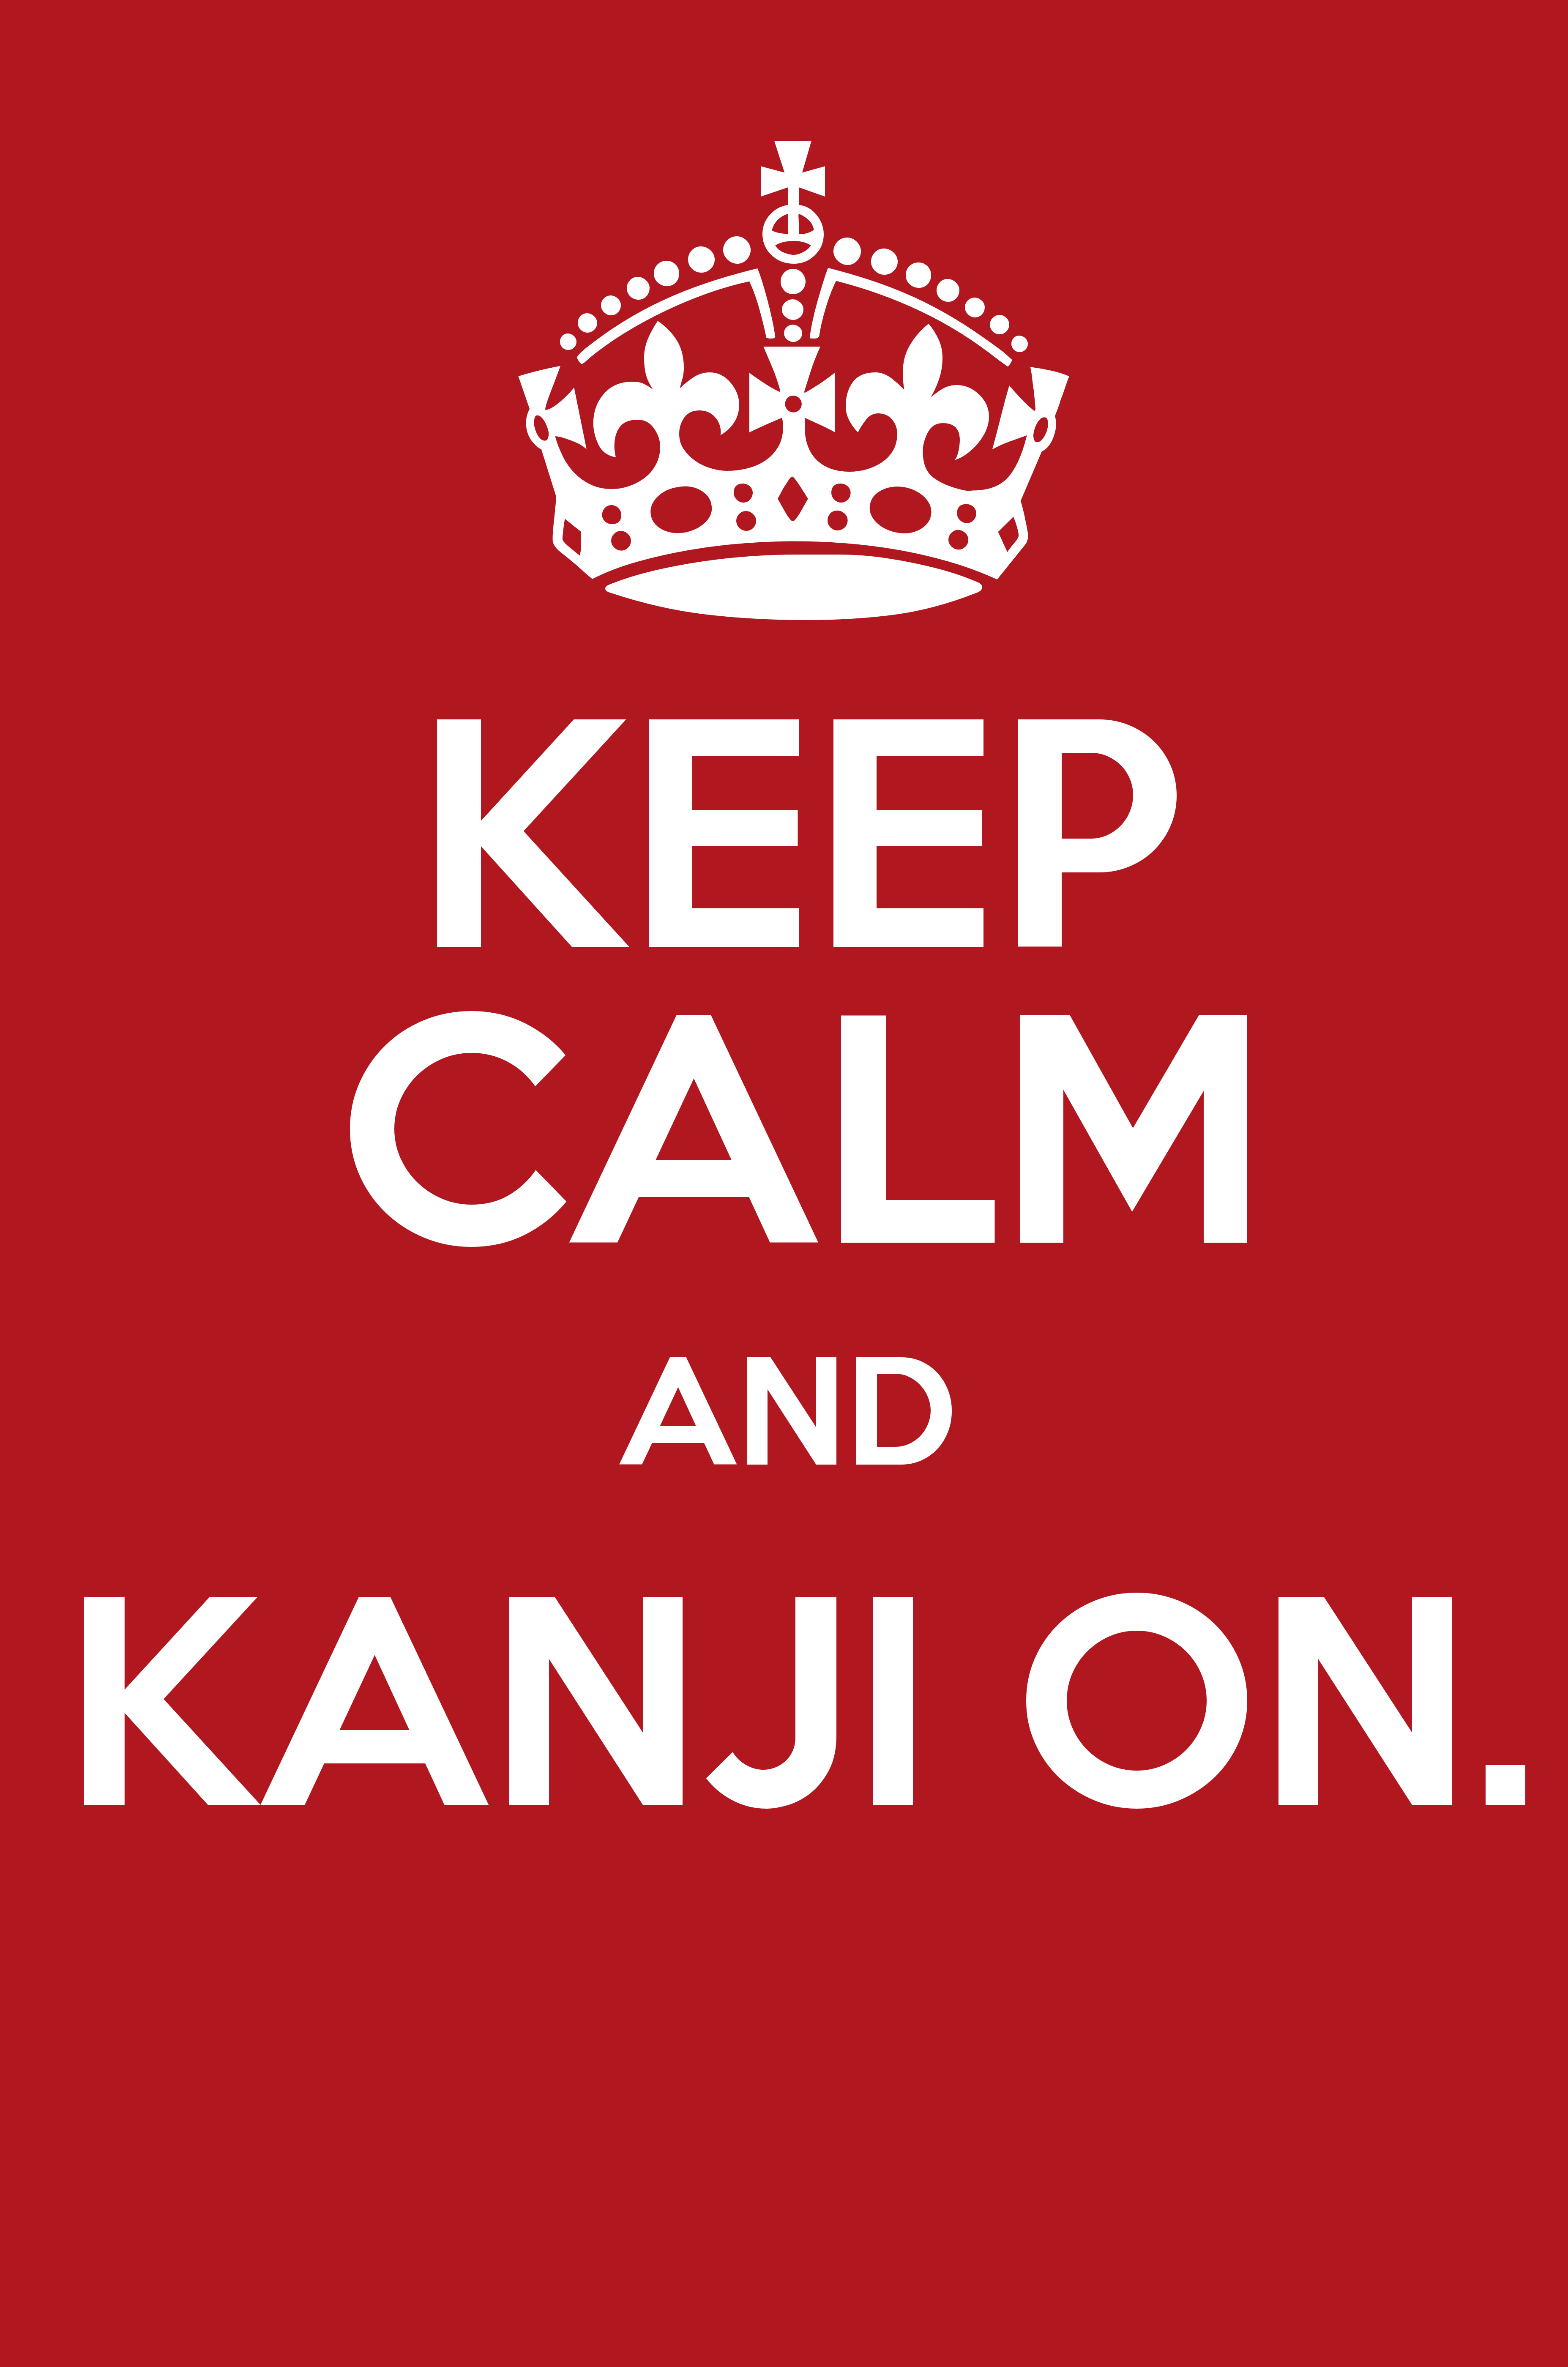 KEEP CALM AND KANJI ON  - Keep Calm and Posters Generator, Maker For